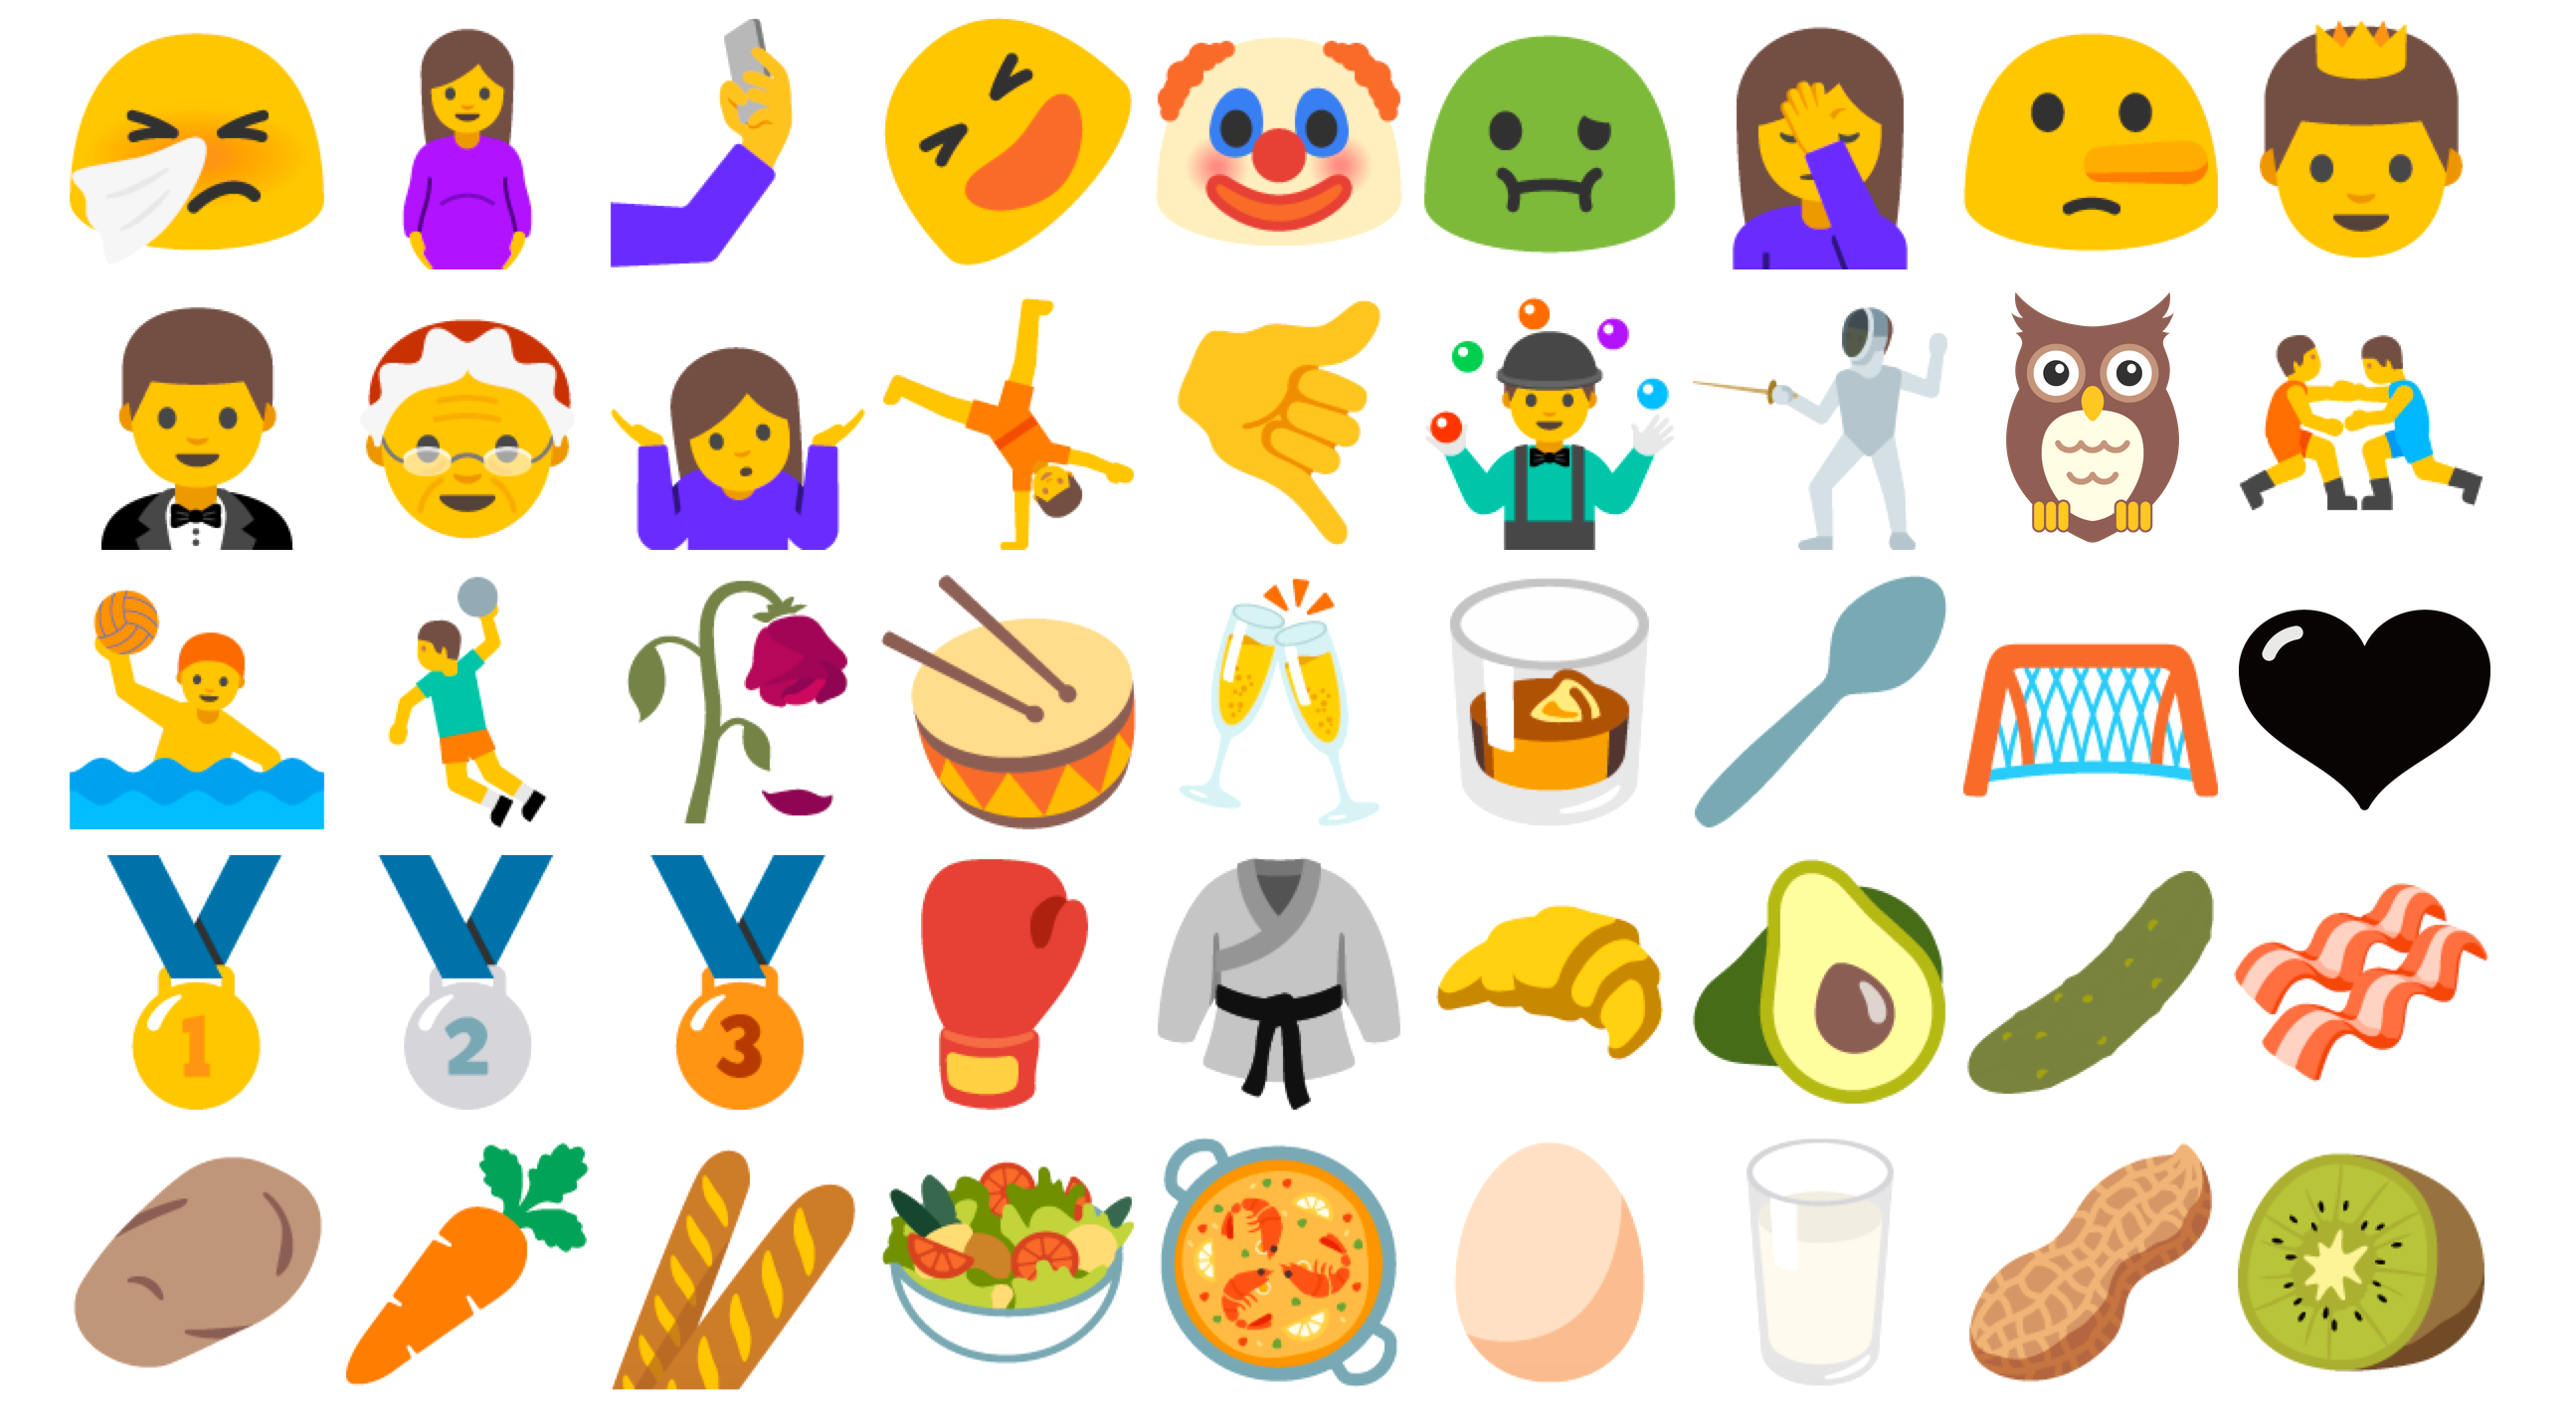 WhatsApp gets new emojis from Android 7.1